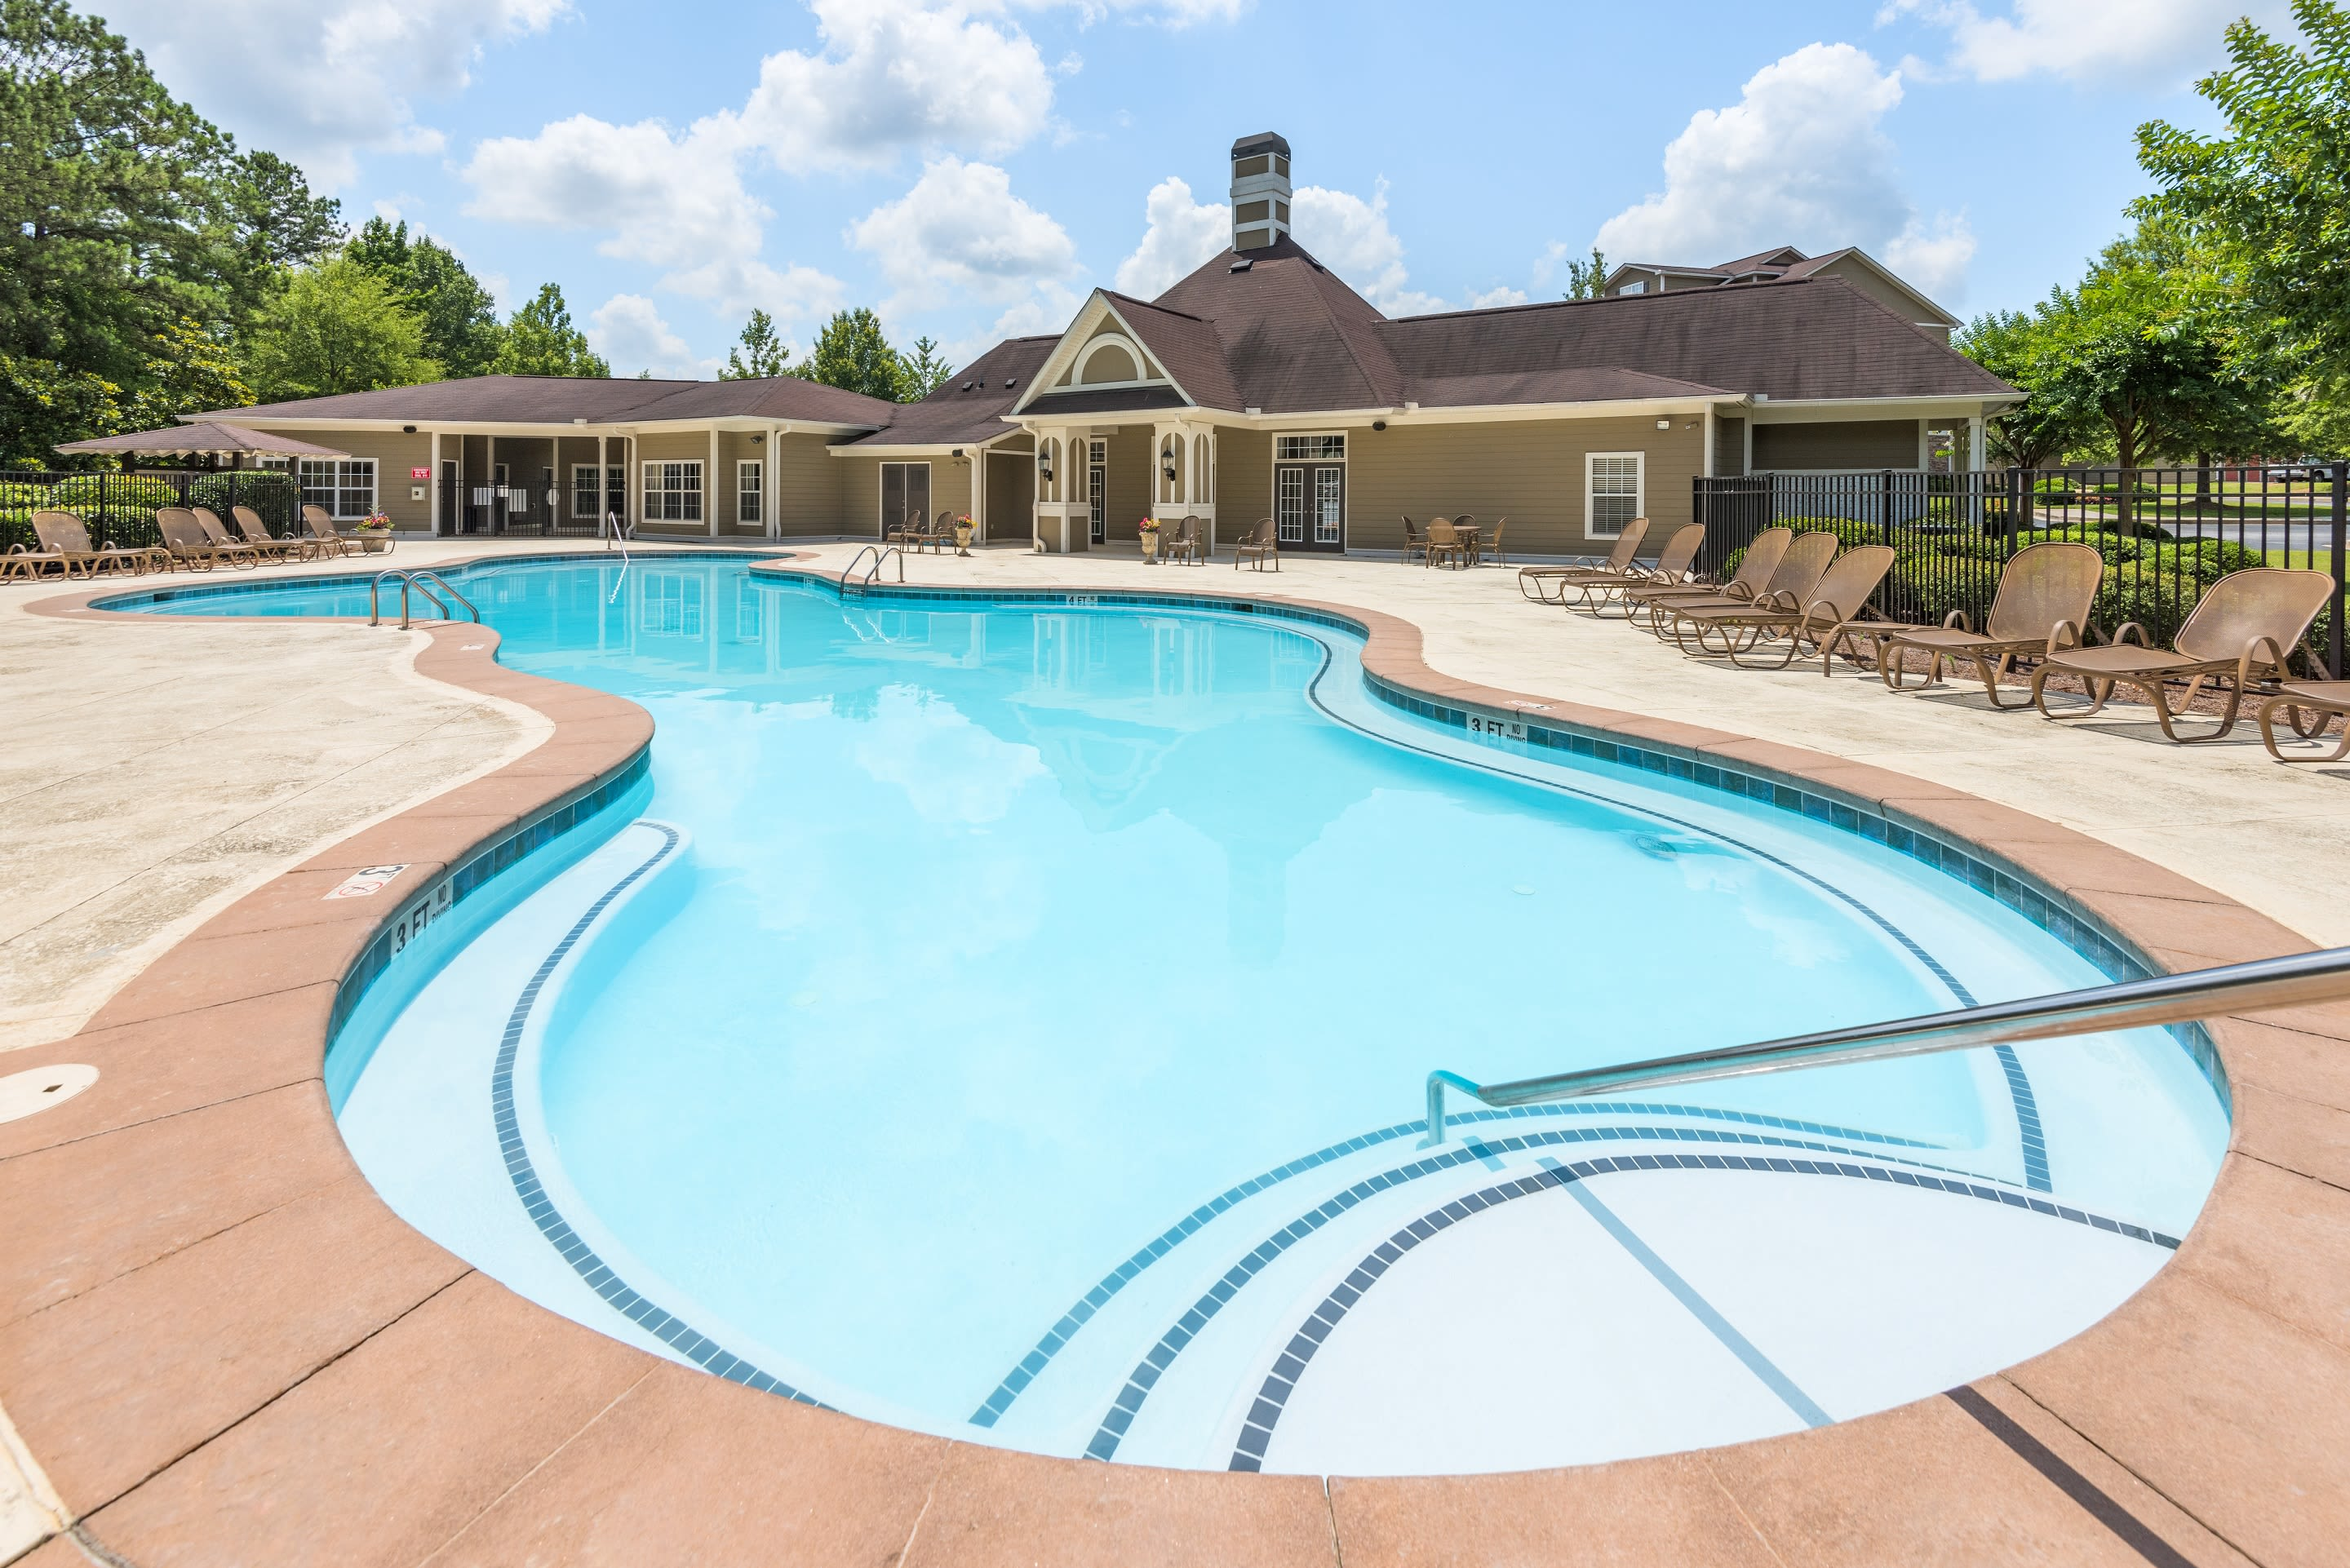 Our apartments in Douglasville, Georgia showcase a luxury swimming pool